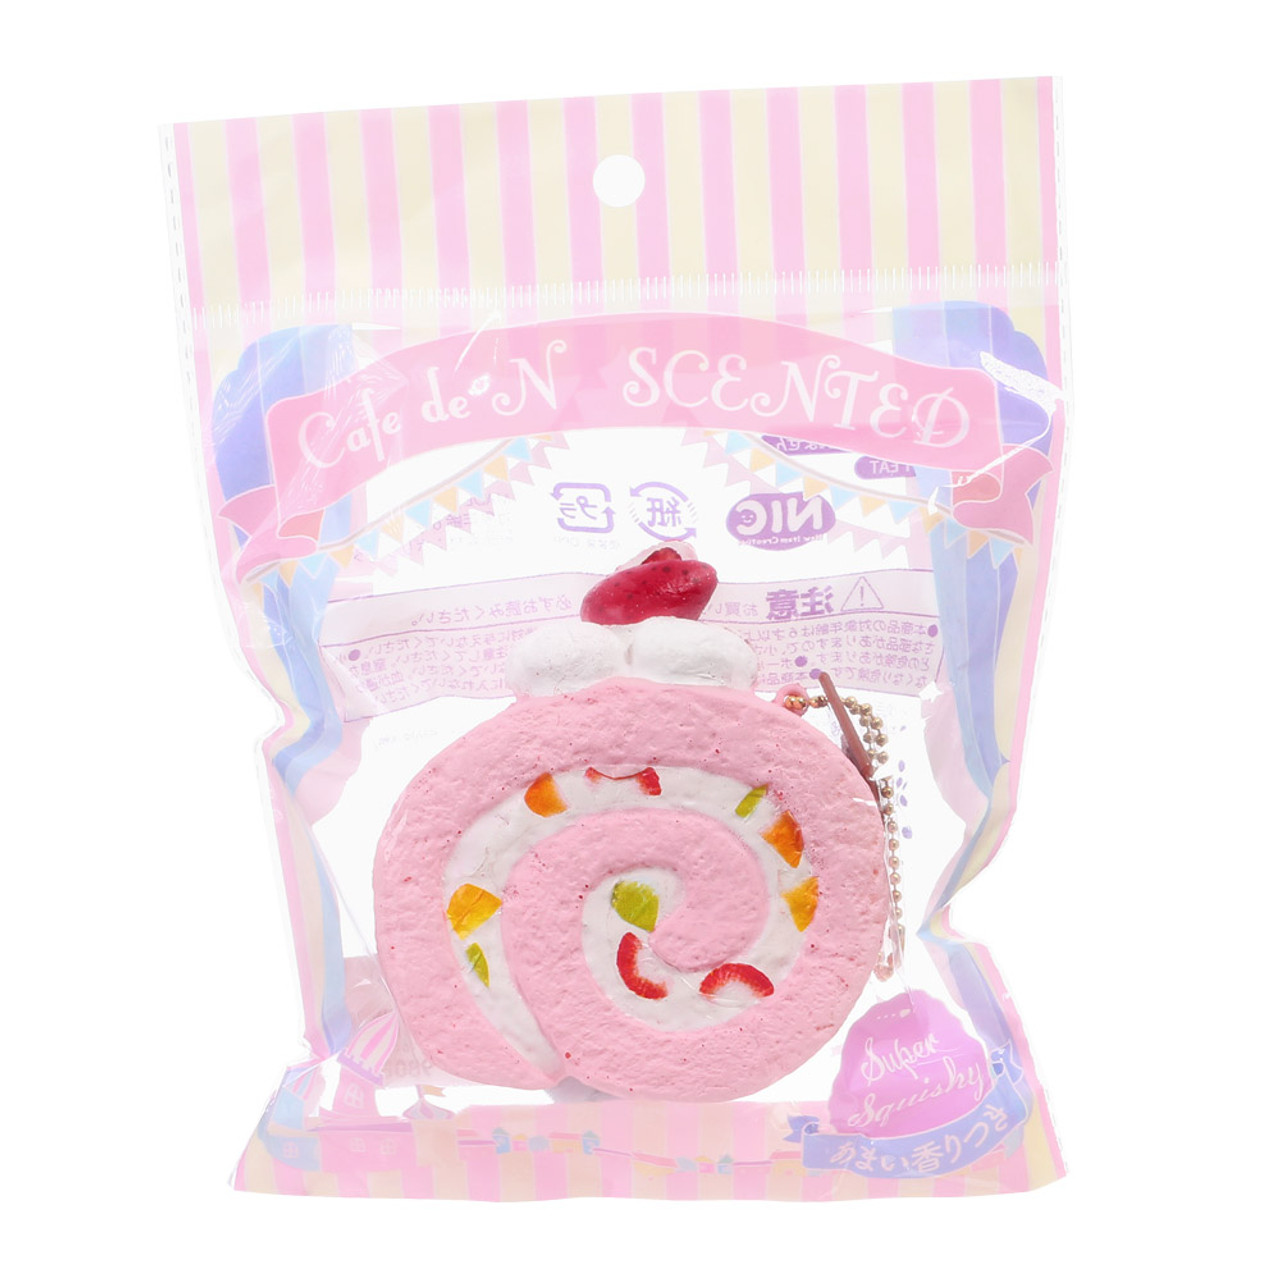 Café De N Scented Strawberry Roll Cake Squishy Toys Charm ( Package View )